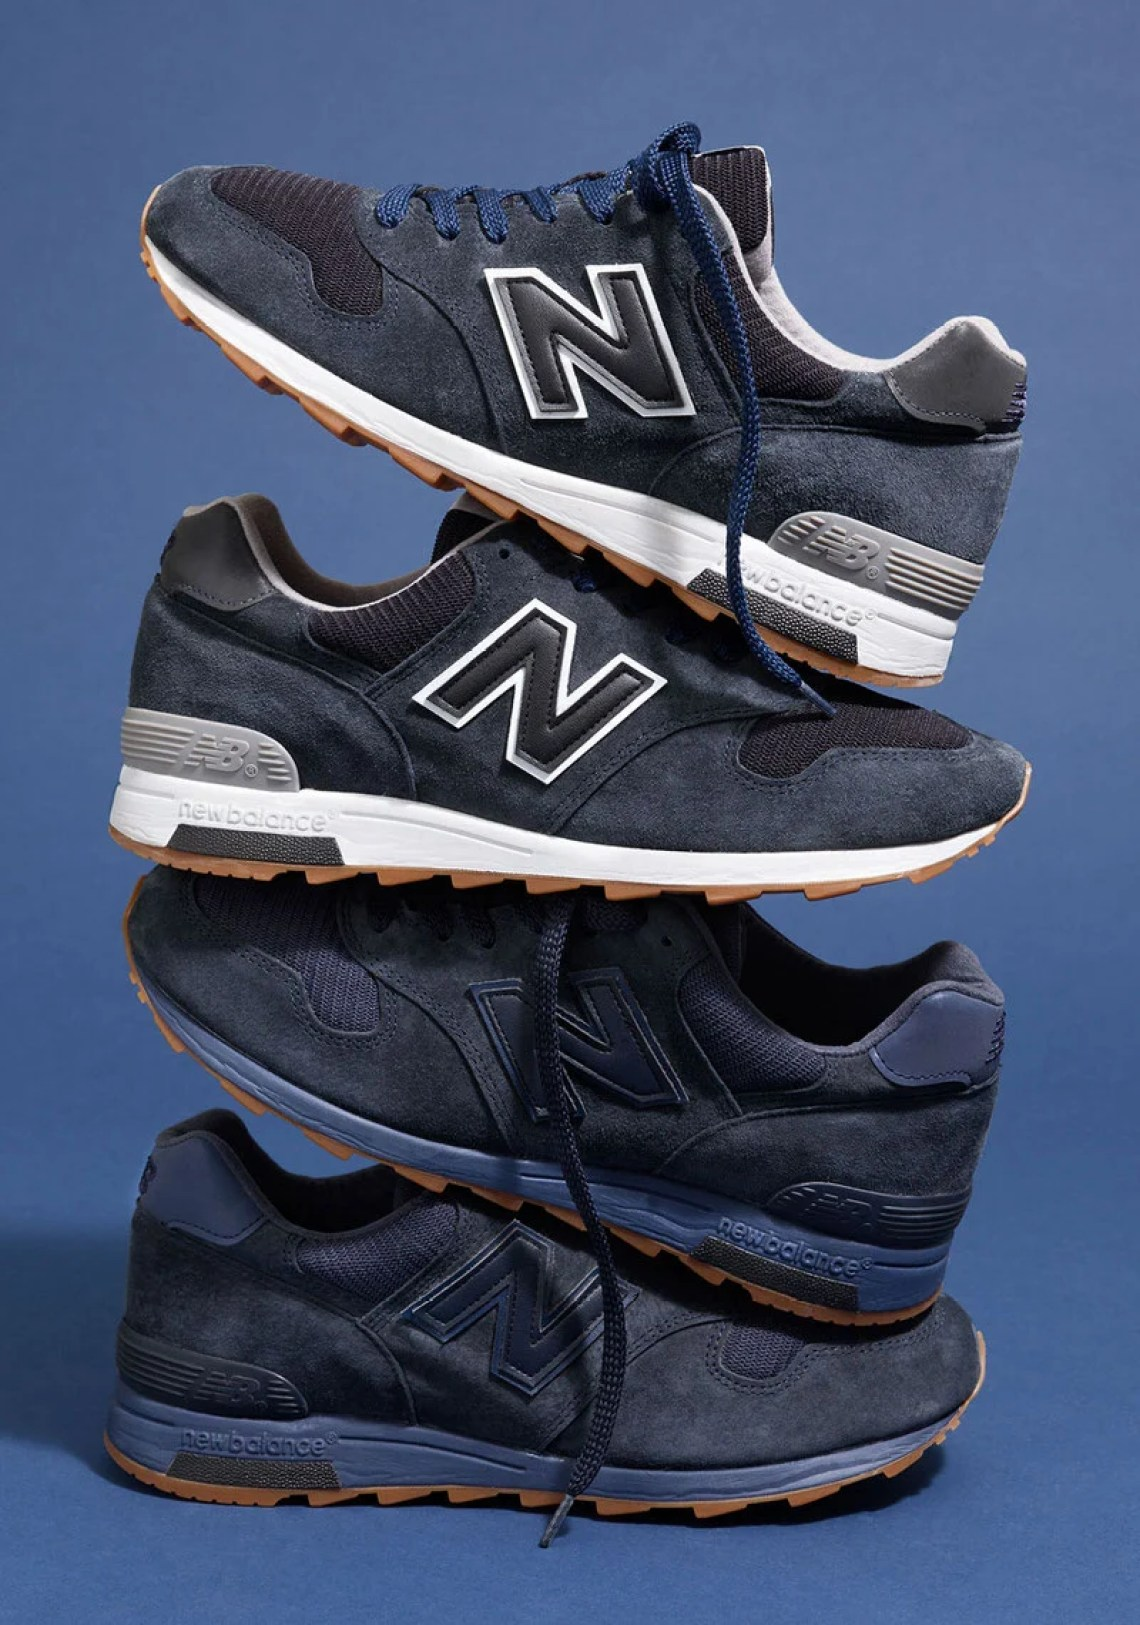 "J.Crew x New Balance 1400 ""Midnight"" Pack"